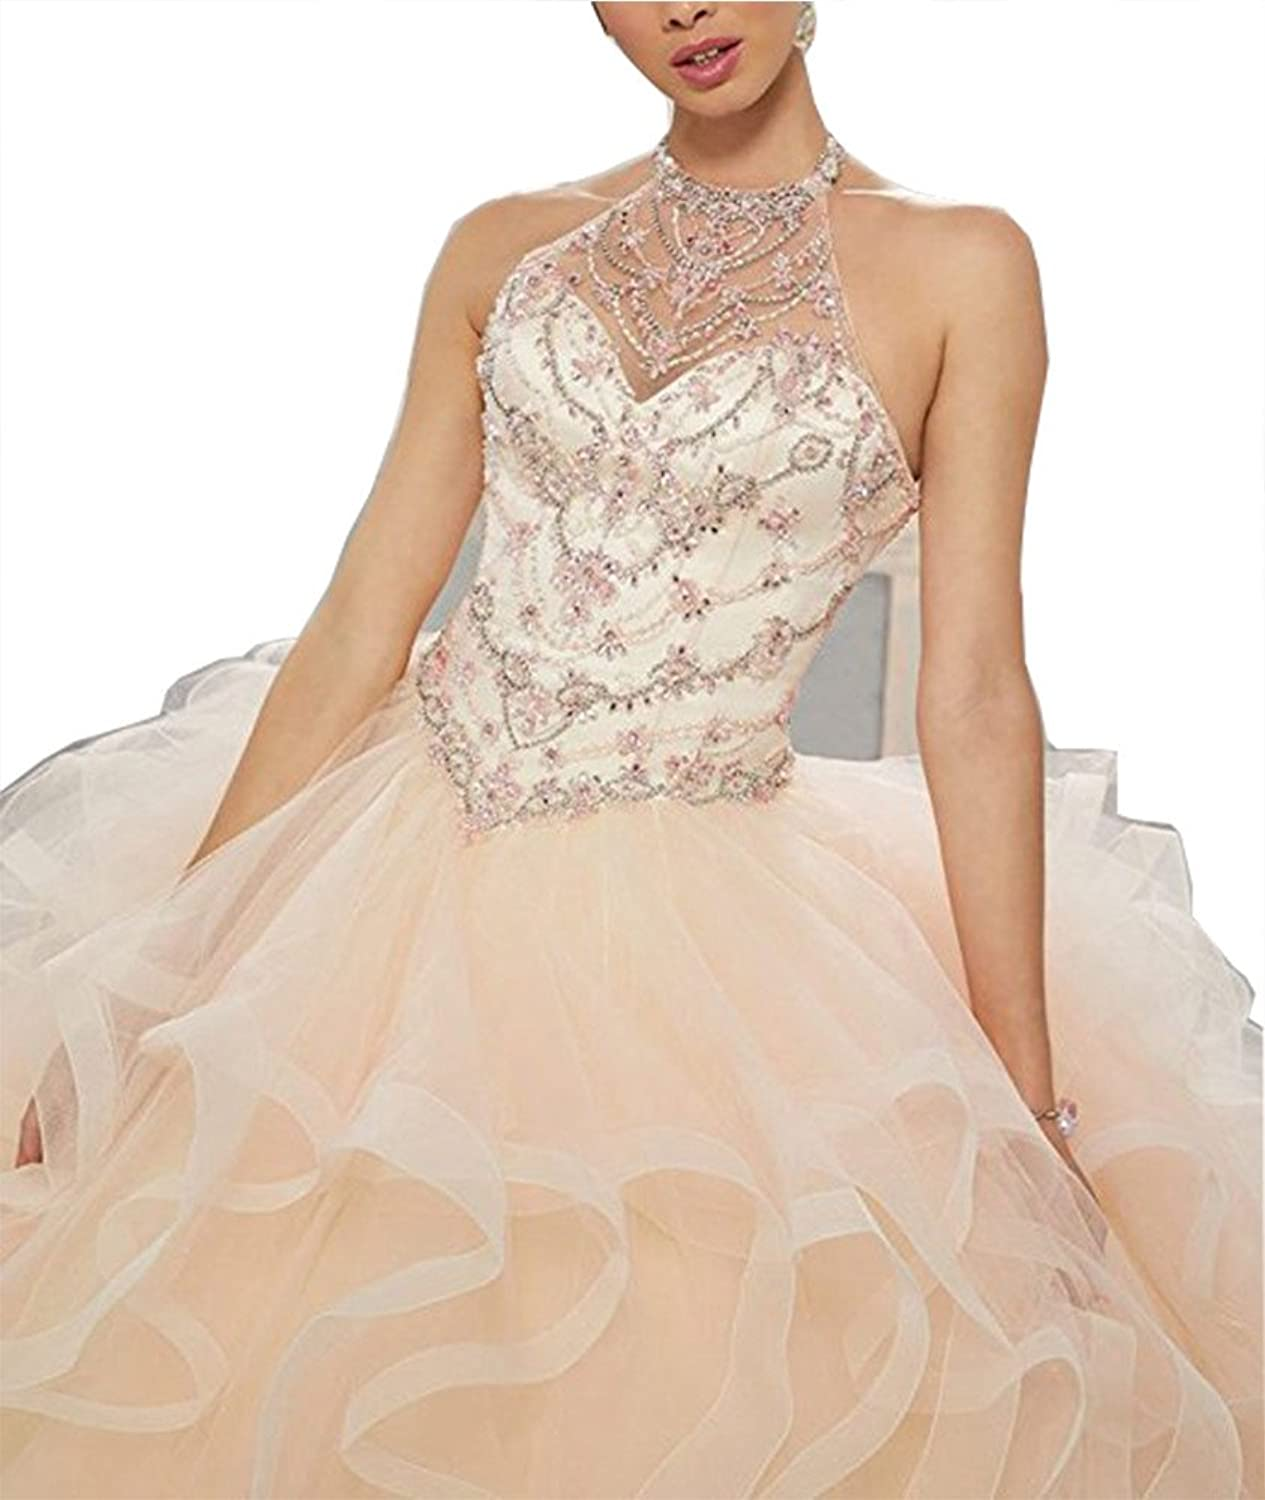 Chenghouse Ball Gown Quinceanera Laceup Back ONeck Prom Evening Dresses